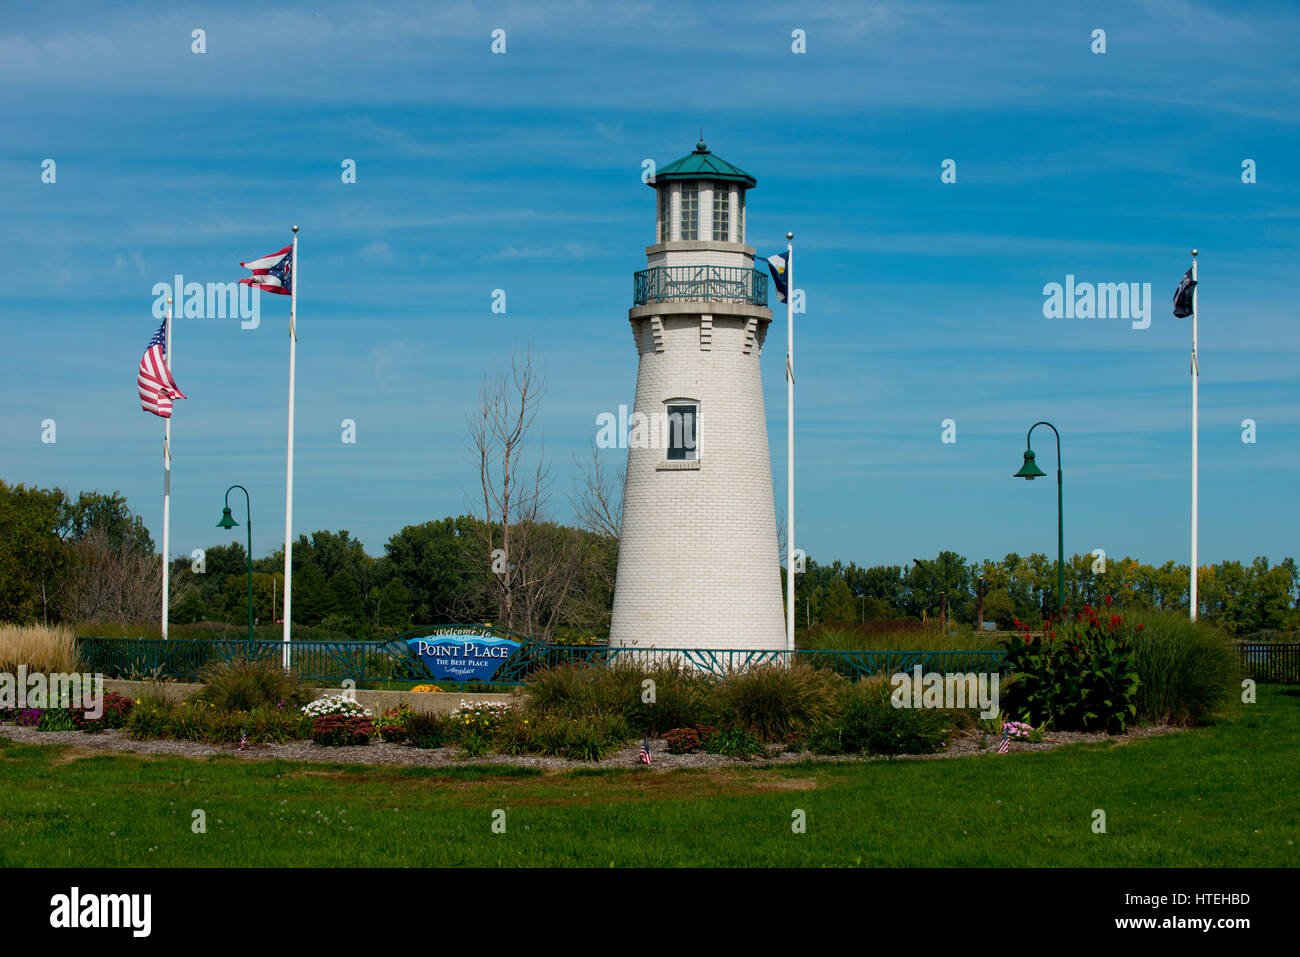 light house in point place toldeo ohio - Stock Image